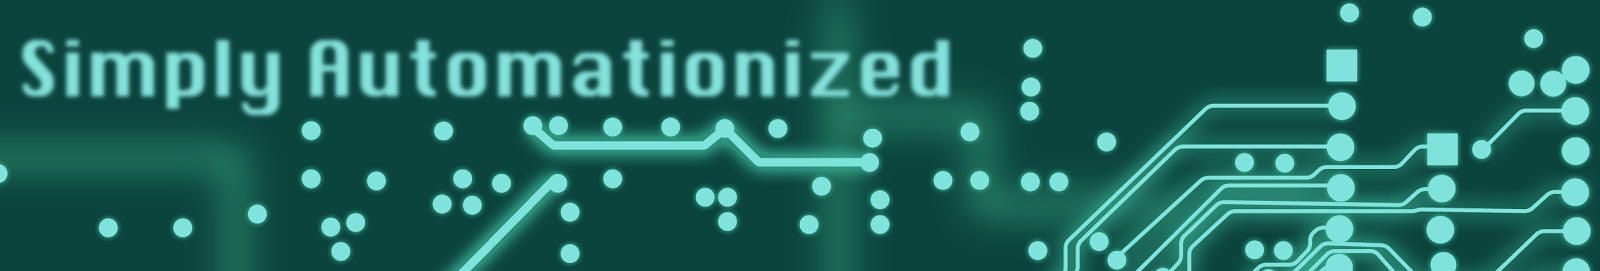 Simply Automationized